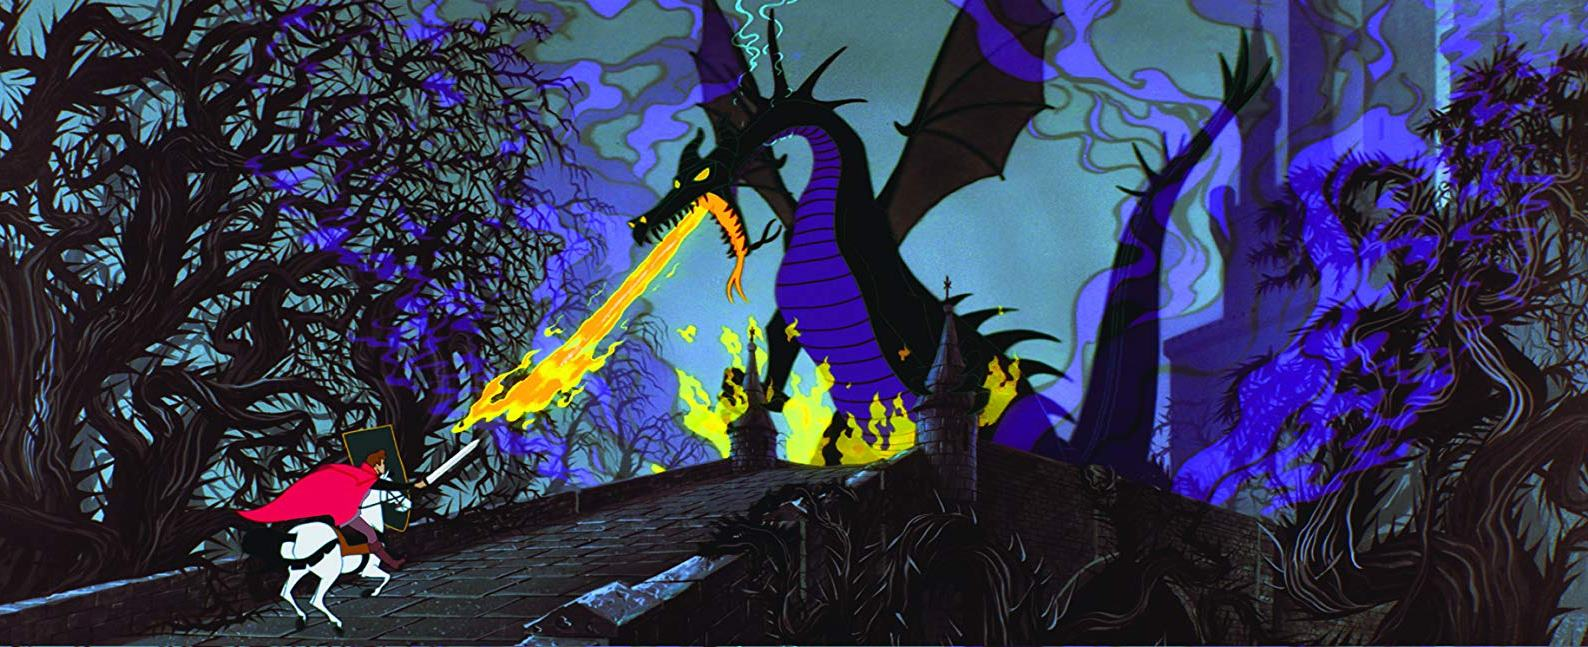 Prince Phillip fights his way through the forest of thorns to tackle the dragon in Sleeping Beauty (1959)